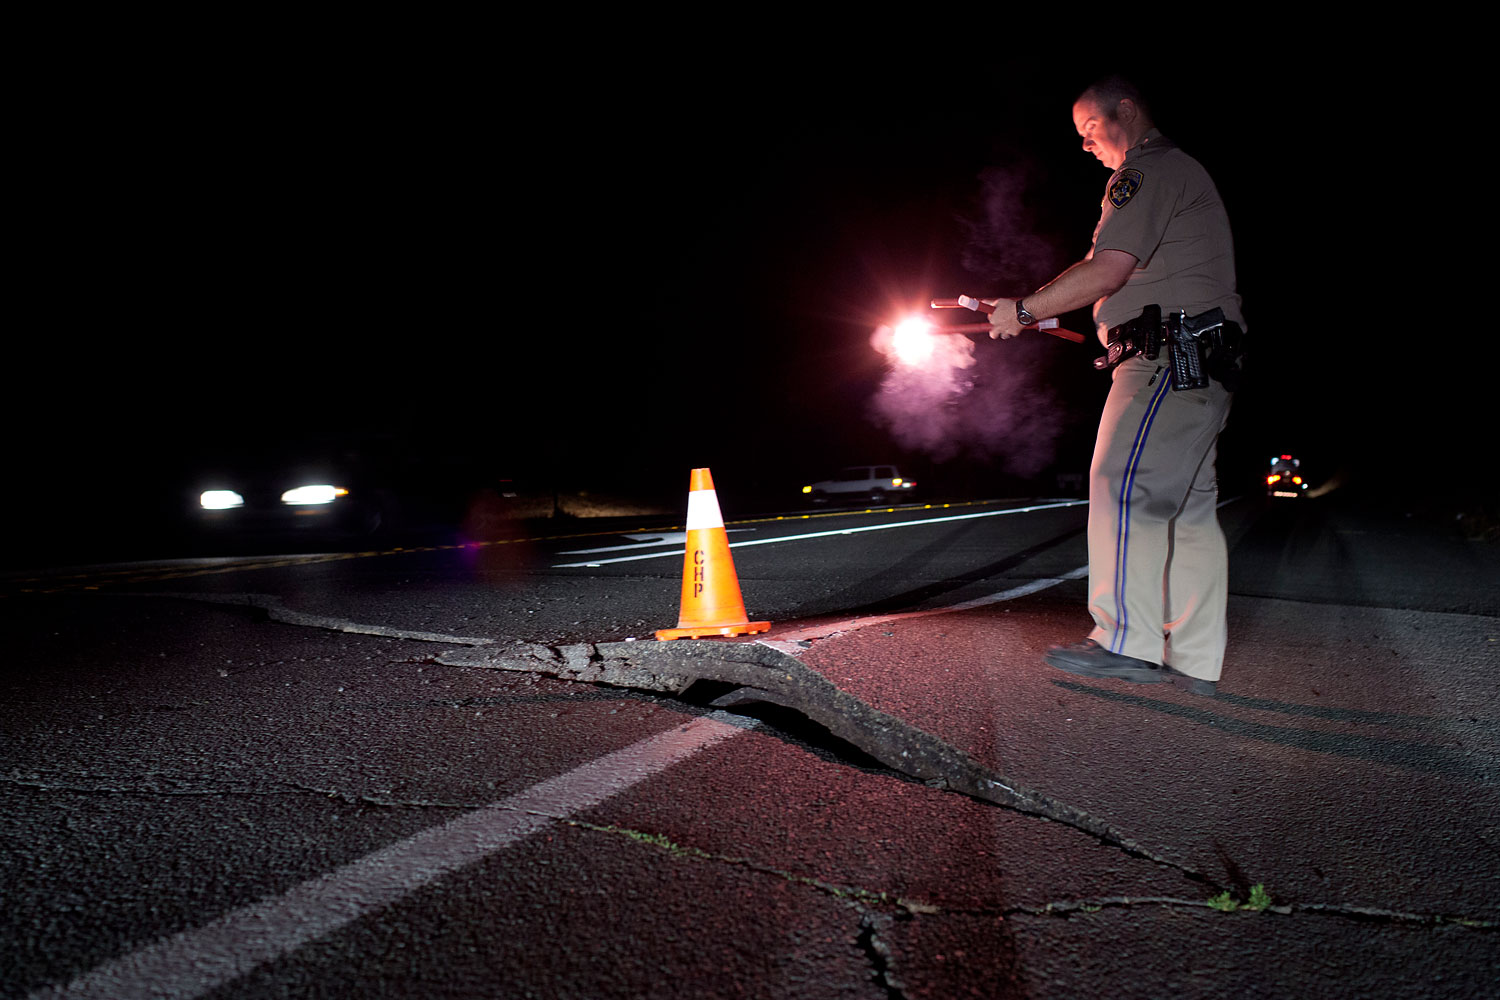 A California Highway Patrol officer redirects traffic from a buckled section of California's Highway 12 near Sonoma, Calif.